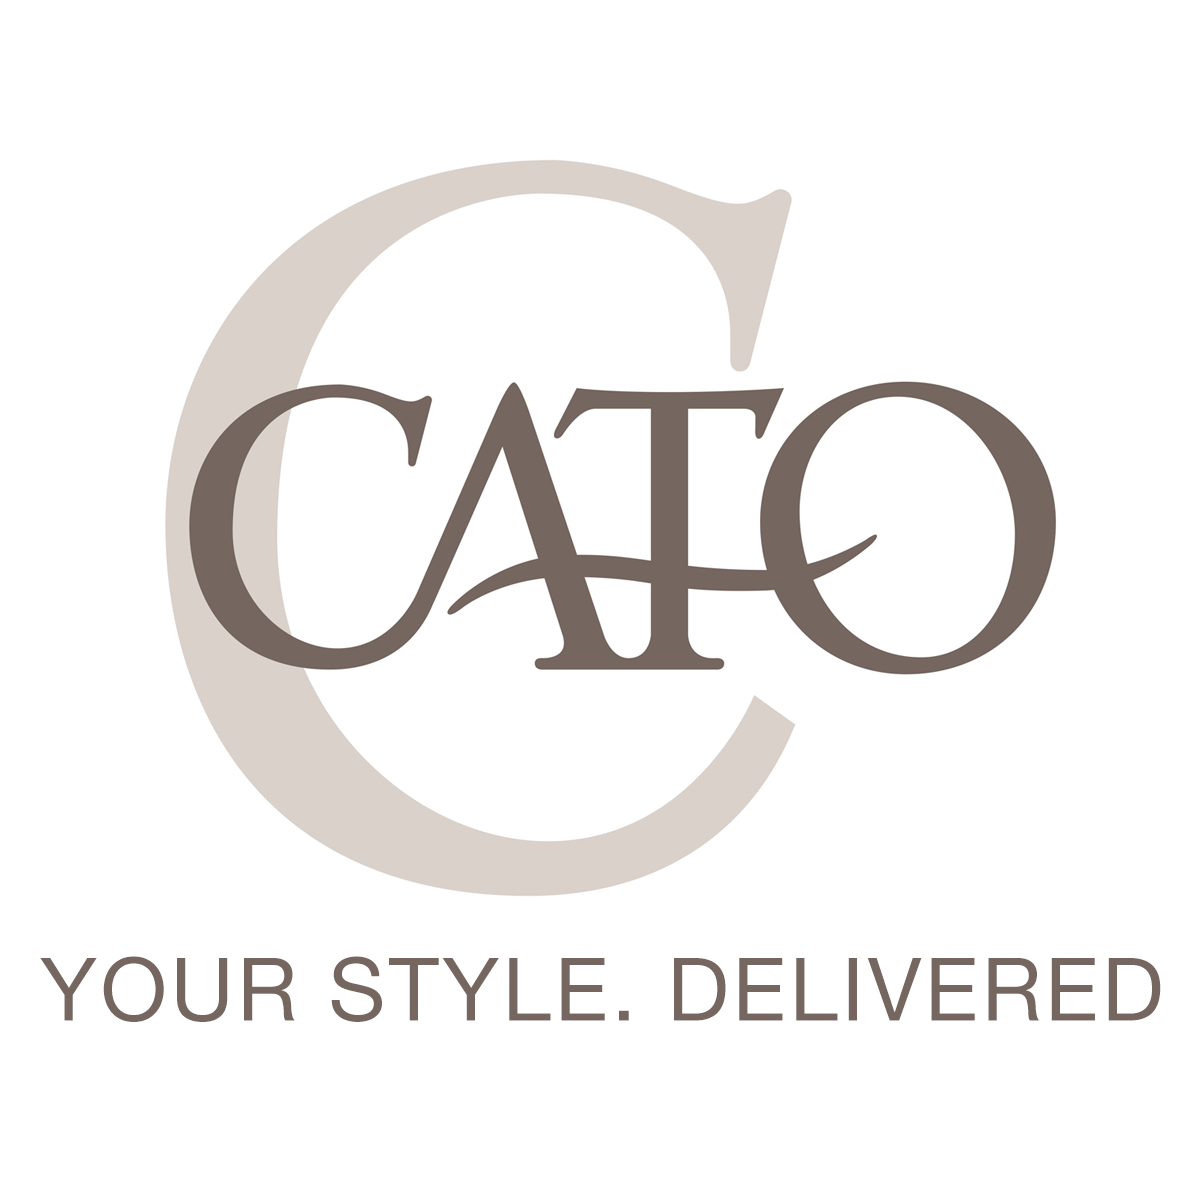 3771 Tivoli Garden Terrace Fremont Ca Cato Fashions Your Style Delivered